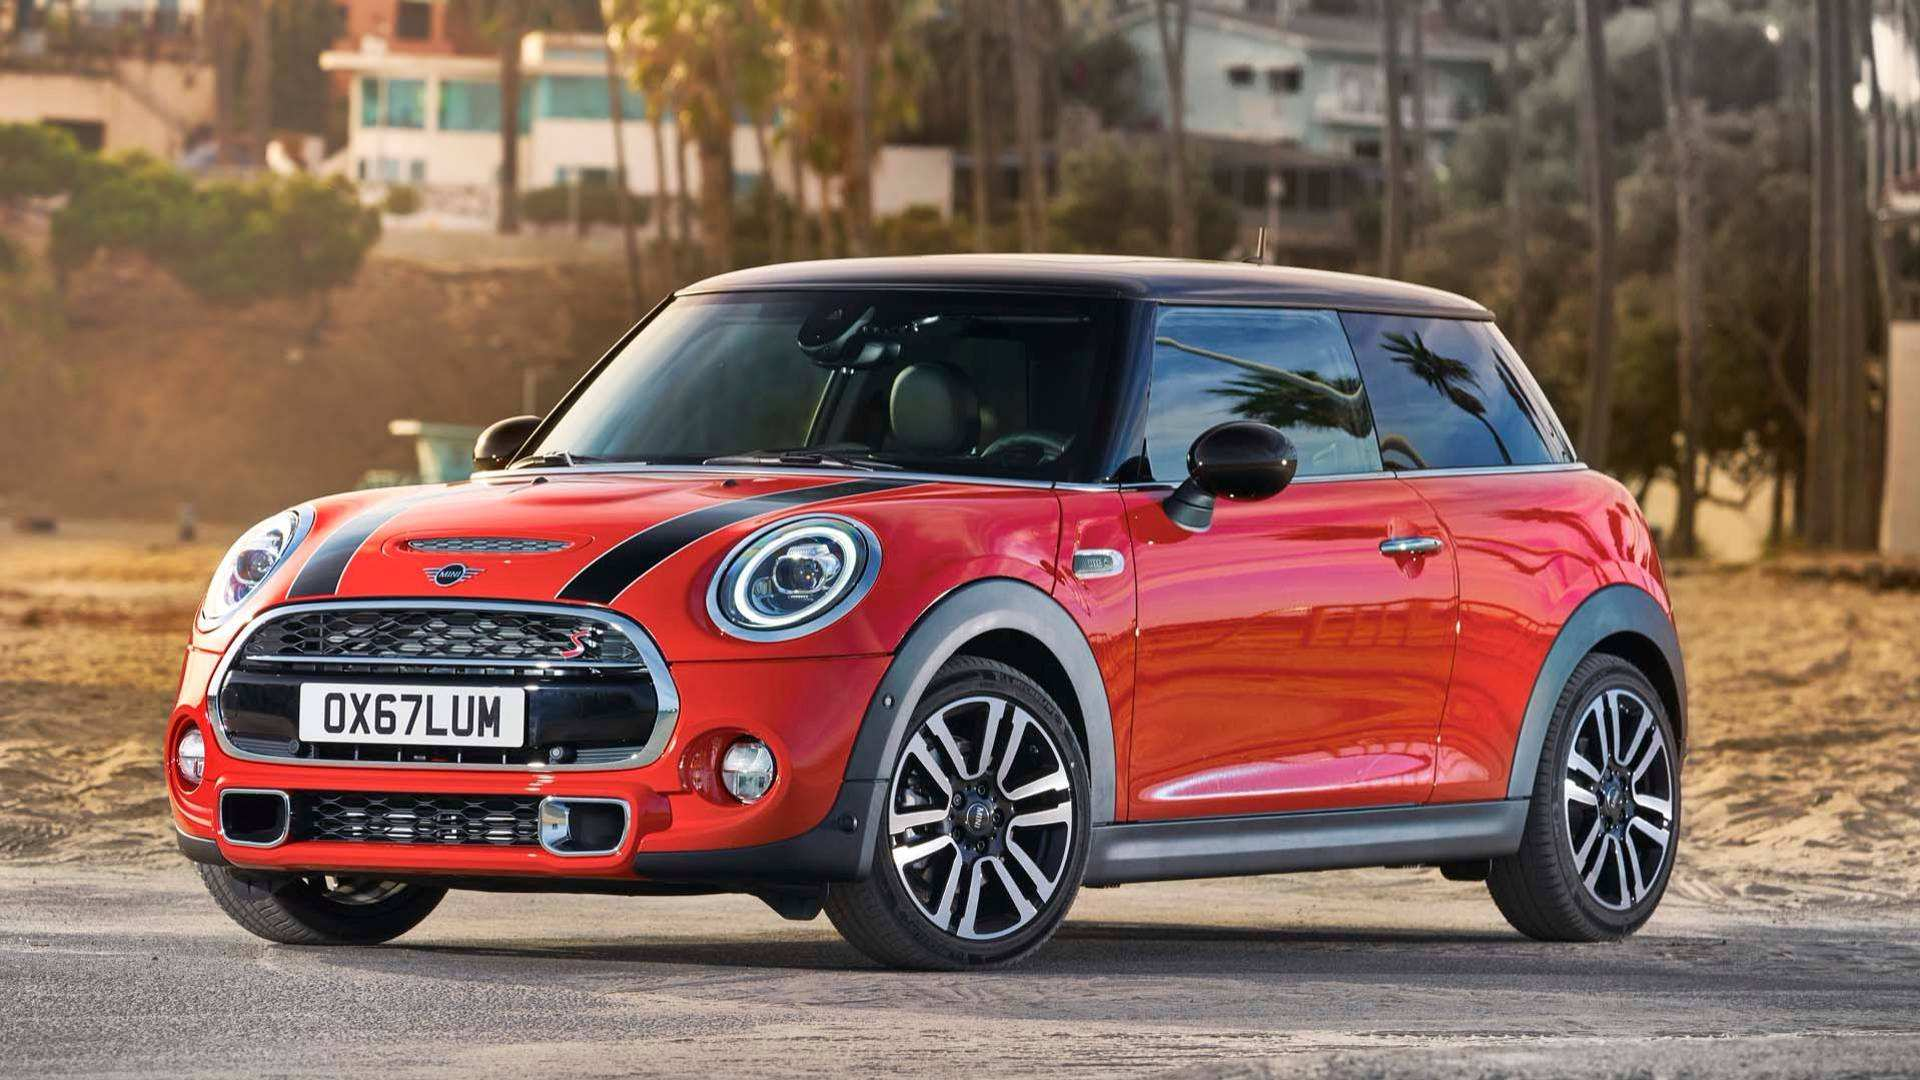 85 The Best 2019 Mini Cooper 3 Engine